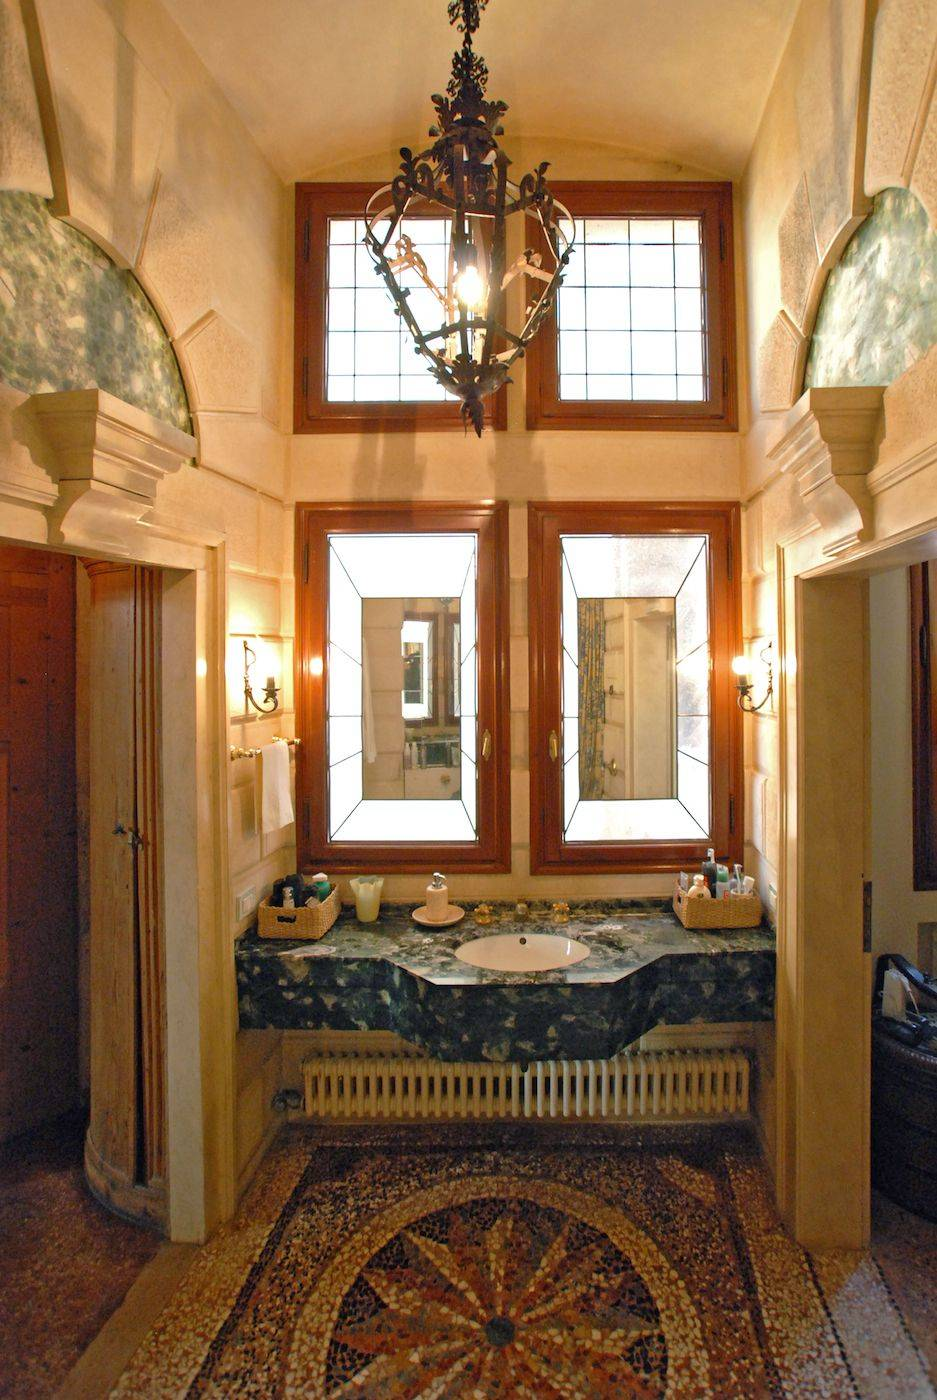 the master bedroom bathroom